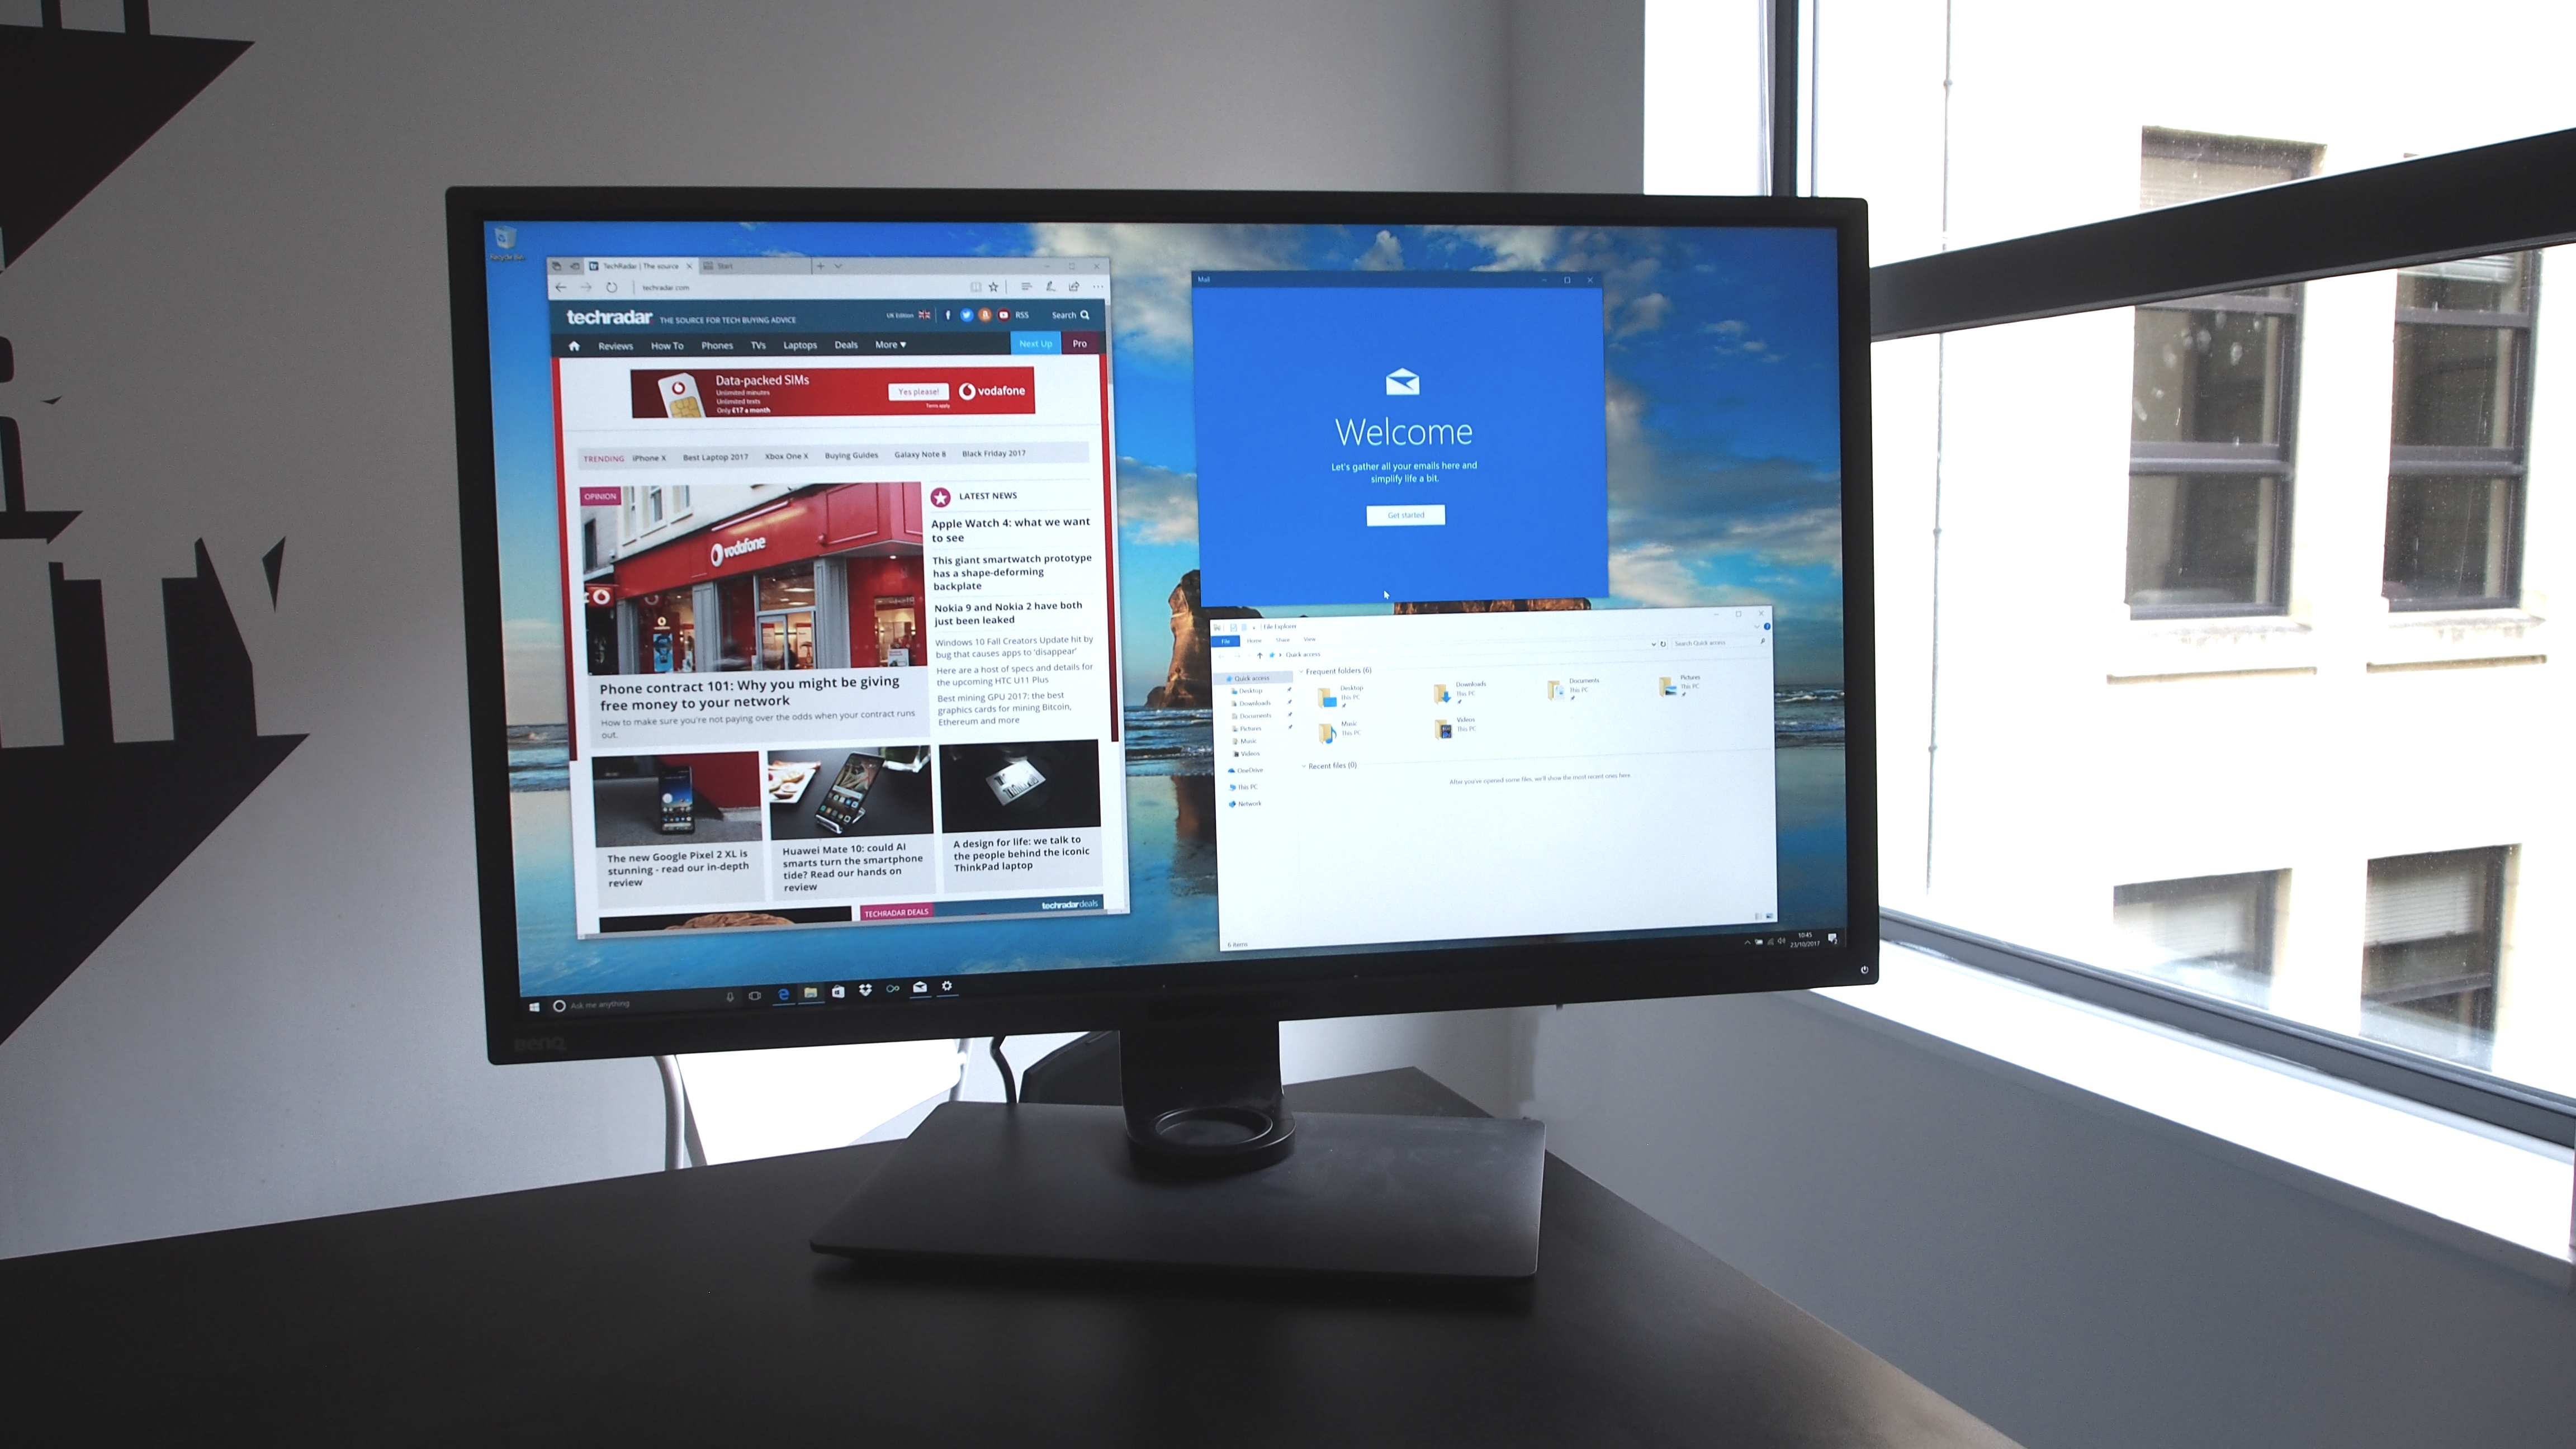 Best monitor 2018: the top 10 monitors and displays we've reviewed